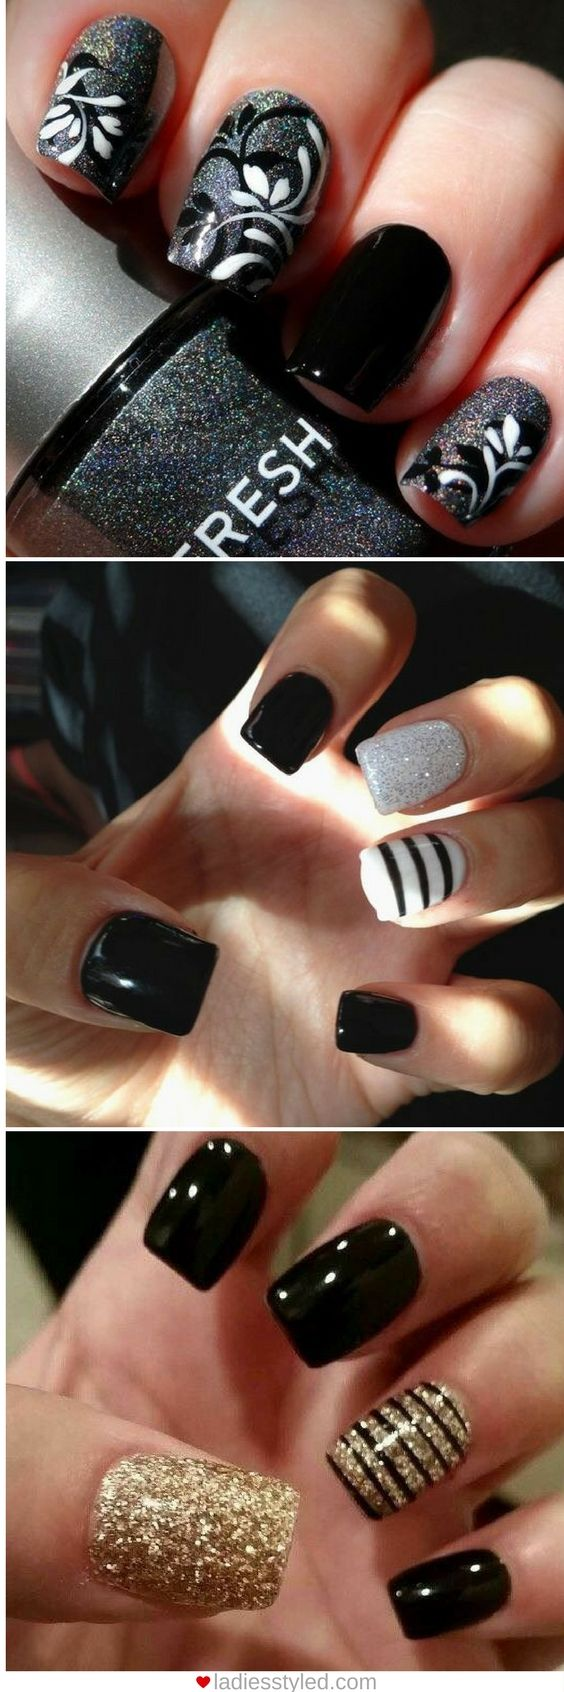 Best 25 black nail designs ideas on pinterest black nail black 106 beautiful nail art designs to copy right now prinsesfo Choice Image